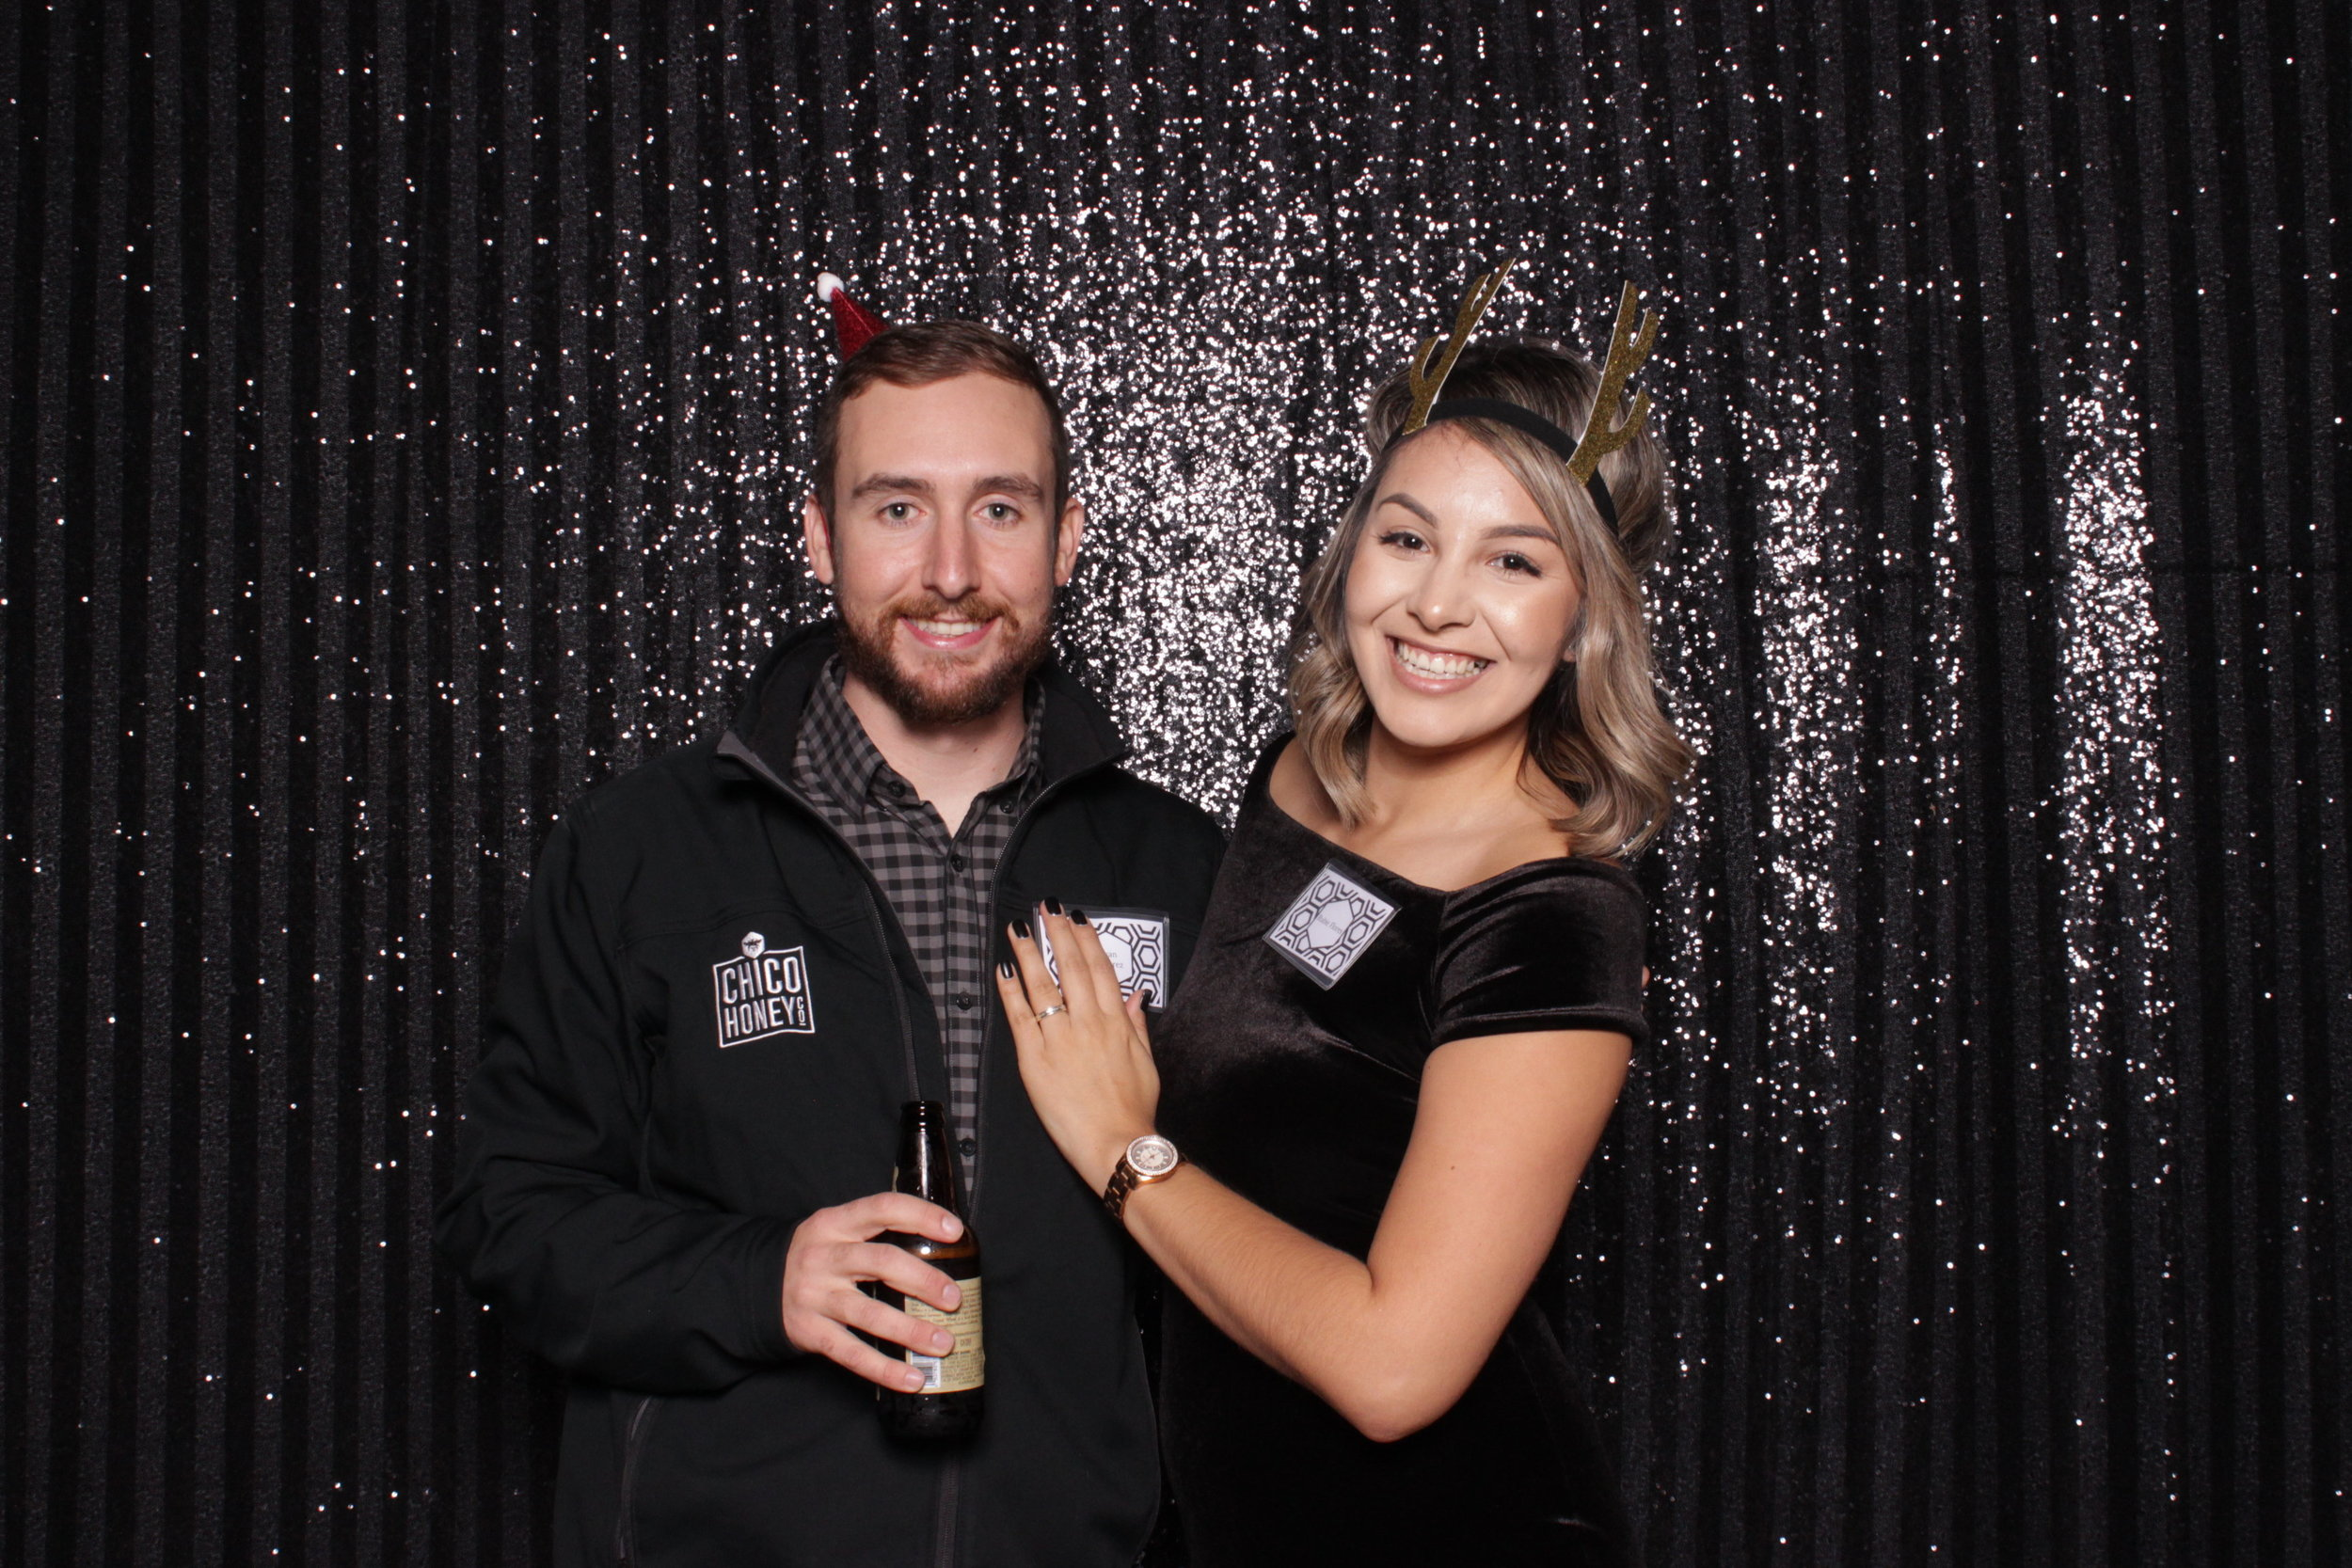 Chico-photo-booth-rental-event-easy